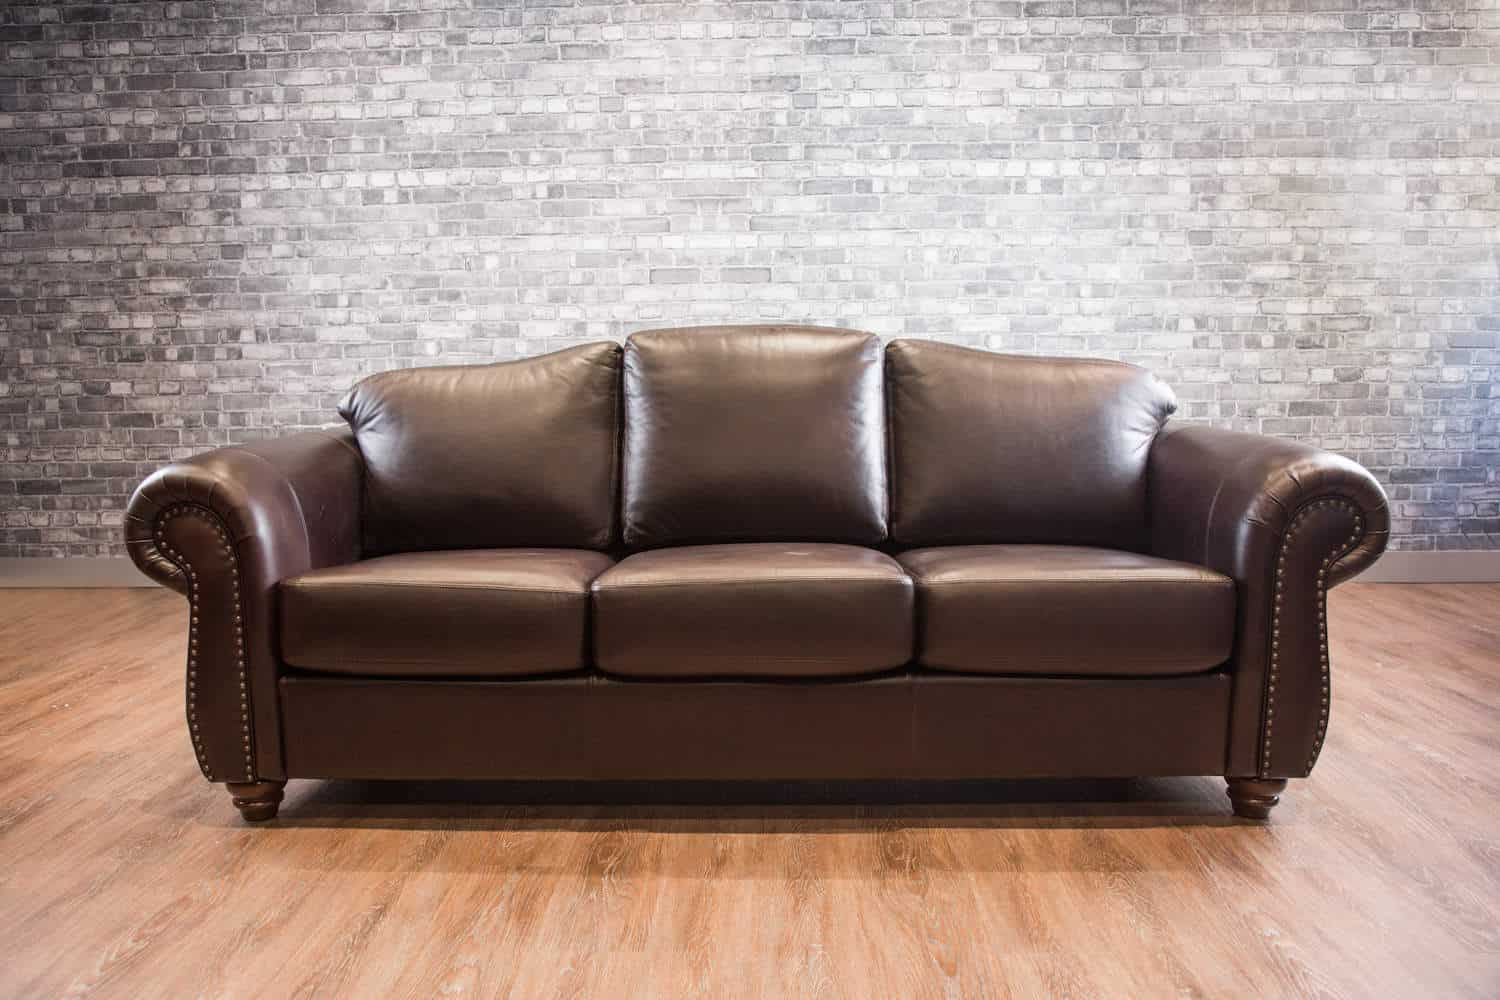 The Utah Leather Sofa Canada S Boss